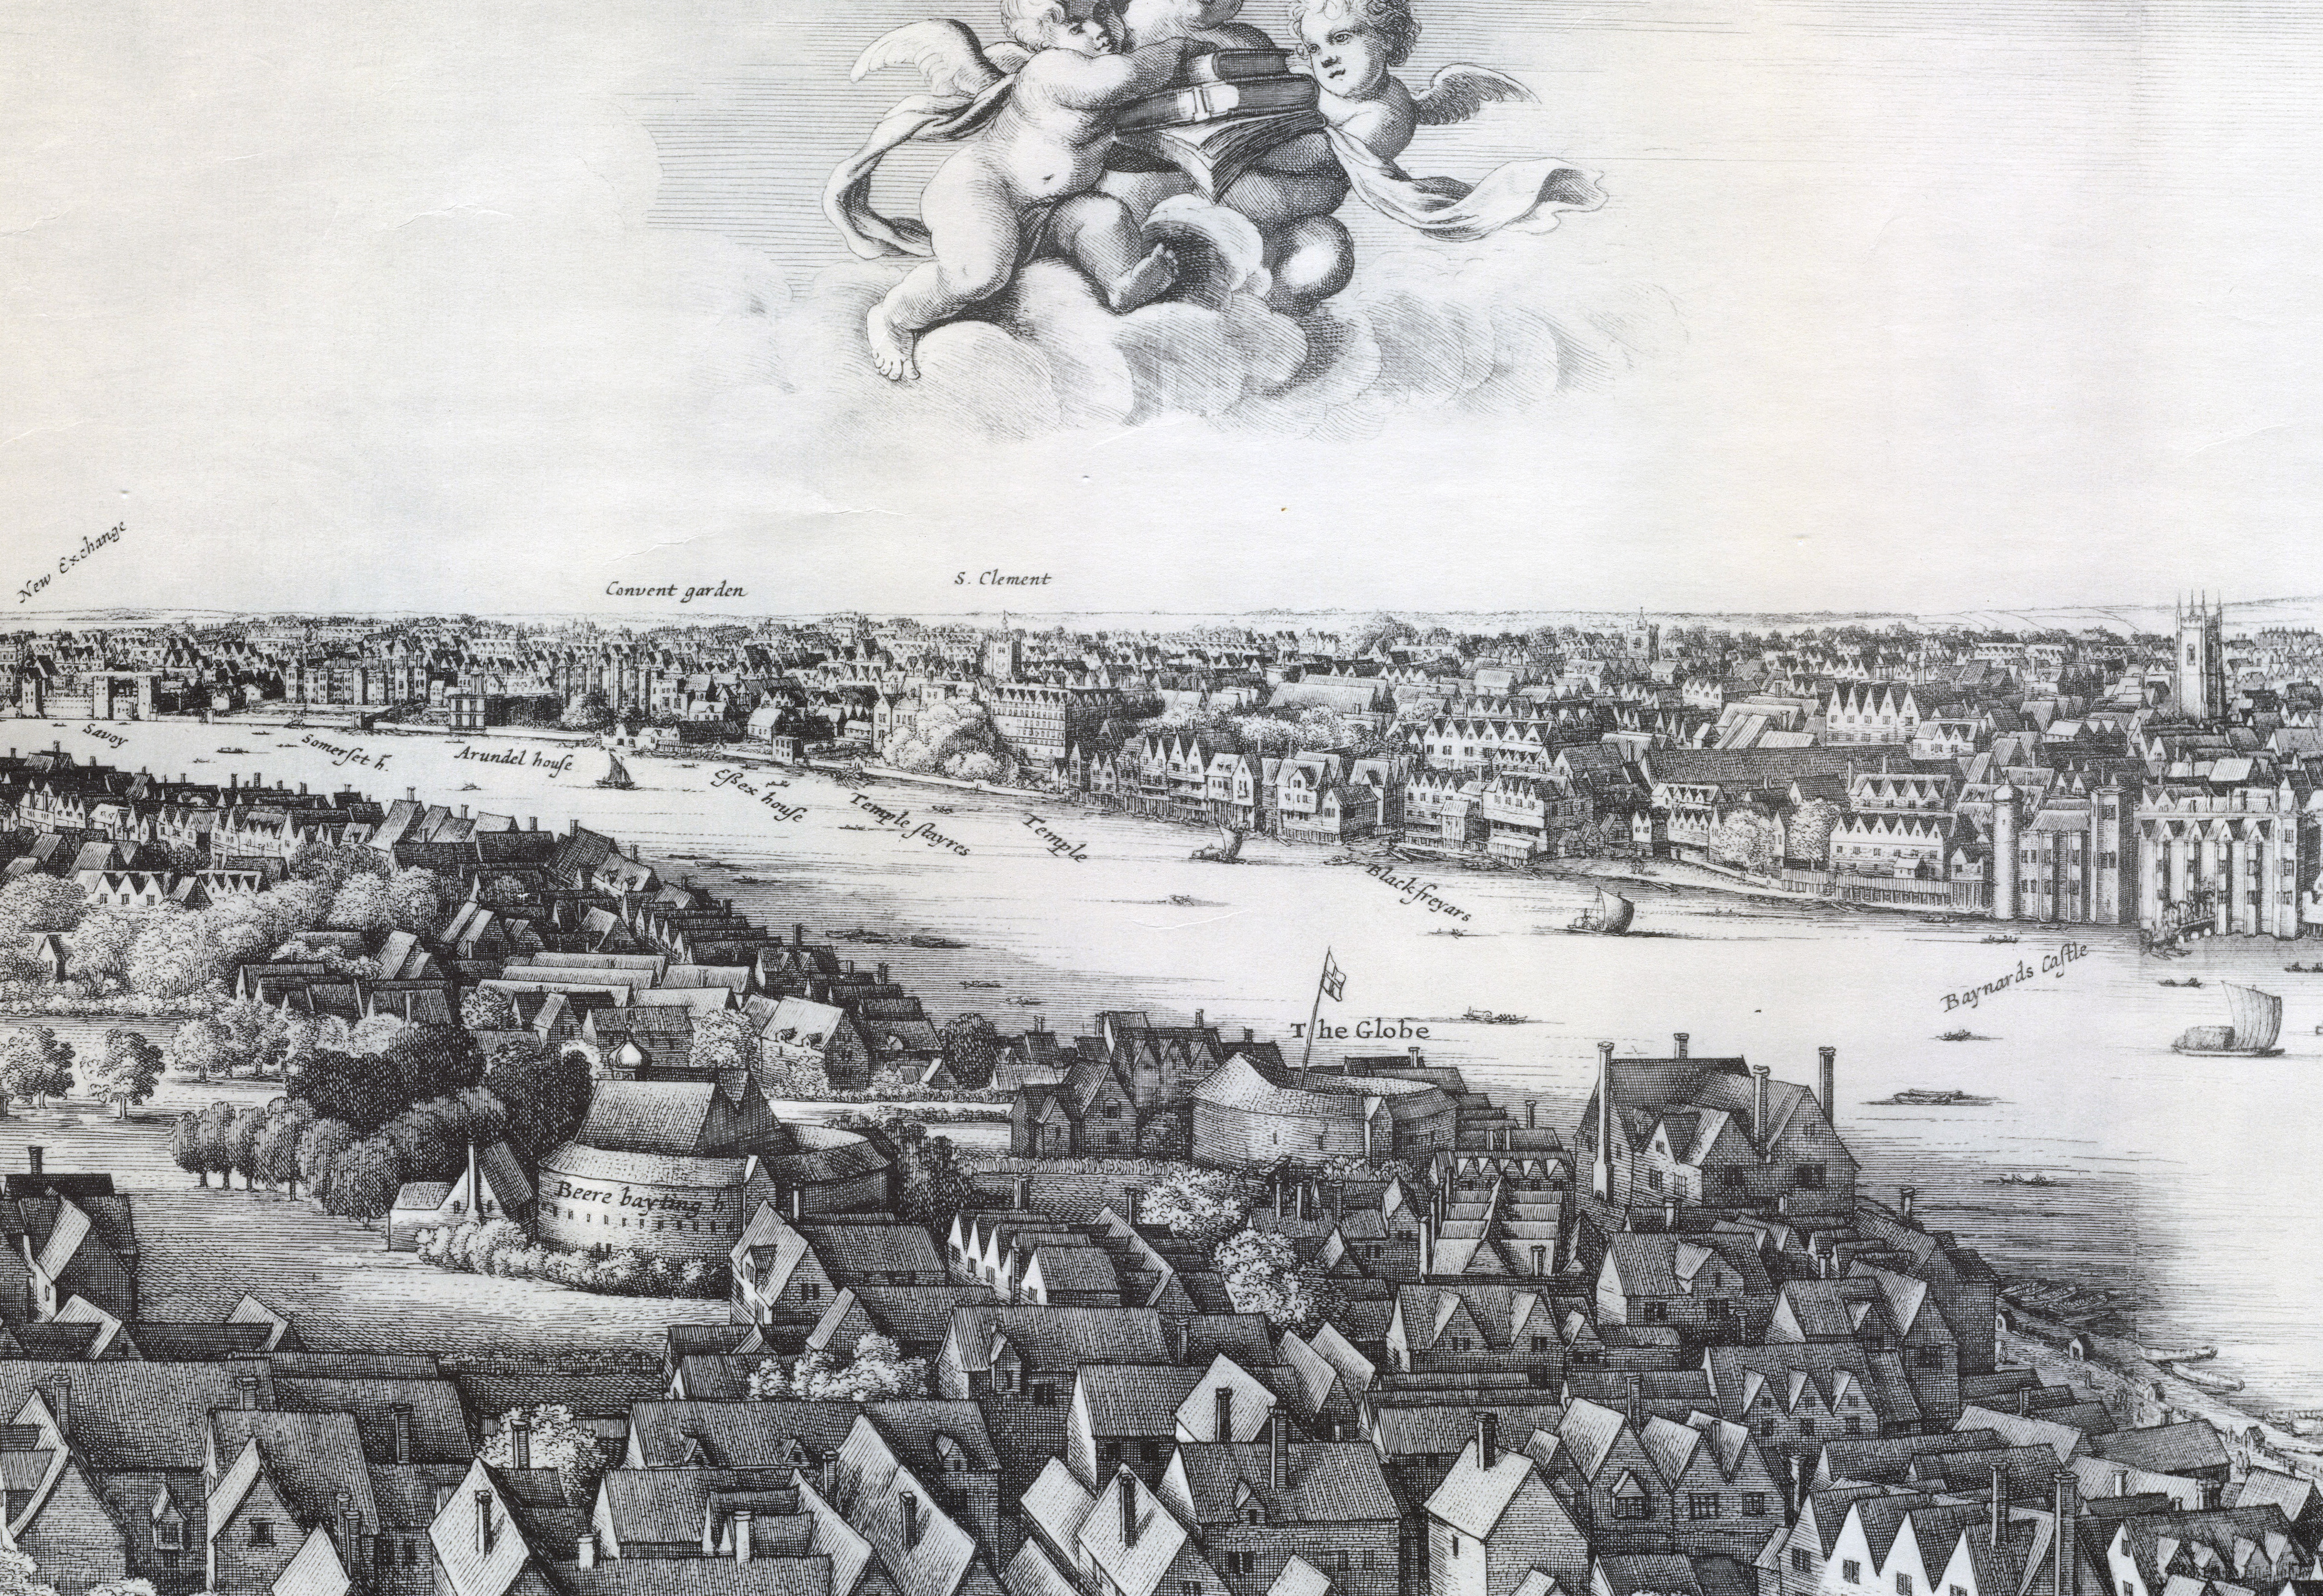 File:1647 Long view of London From Bankside - Wenceslaus Hollar (cropped).